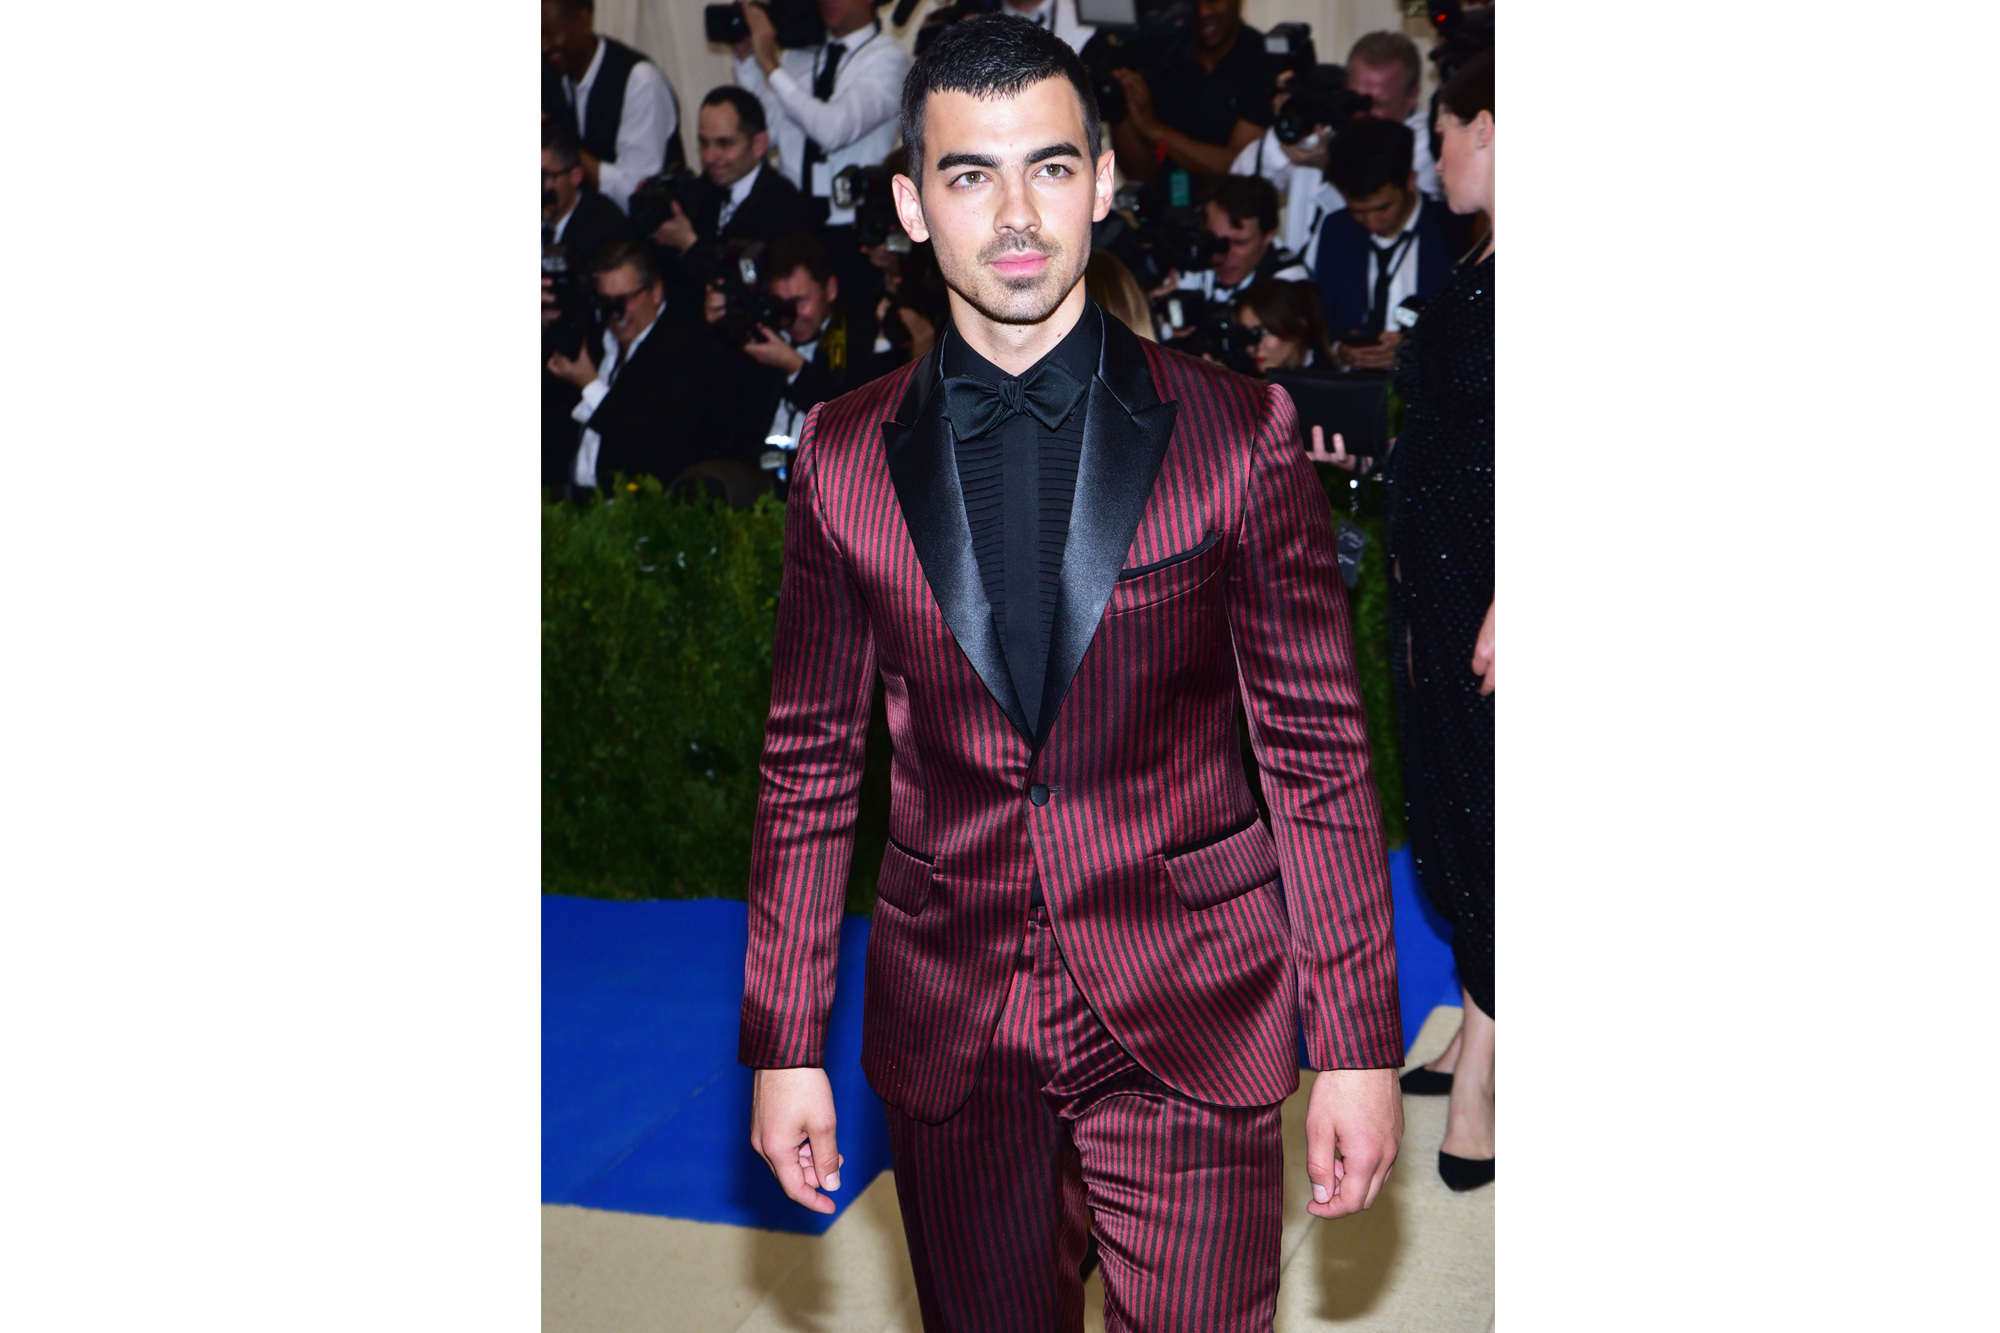 """NEW YORK, NY - MAY 01: Joe Jonas arrives at """"Rei Kawakubo/Comme des Garcons: Art Of The In-Between"""" Costume Institute Gala at The Metropolitan Museum on May 1, 2017 in New York City. (Photo by Sean Zanni/Patrick McMullan via Getty Images)"""